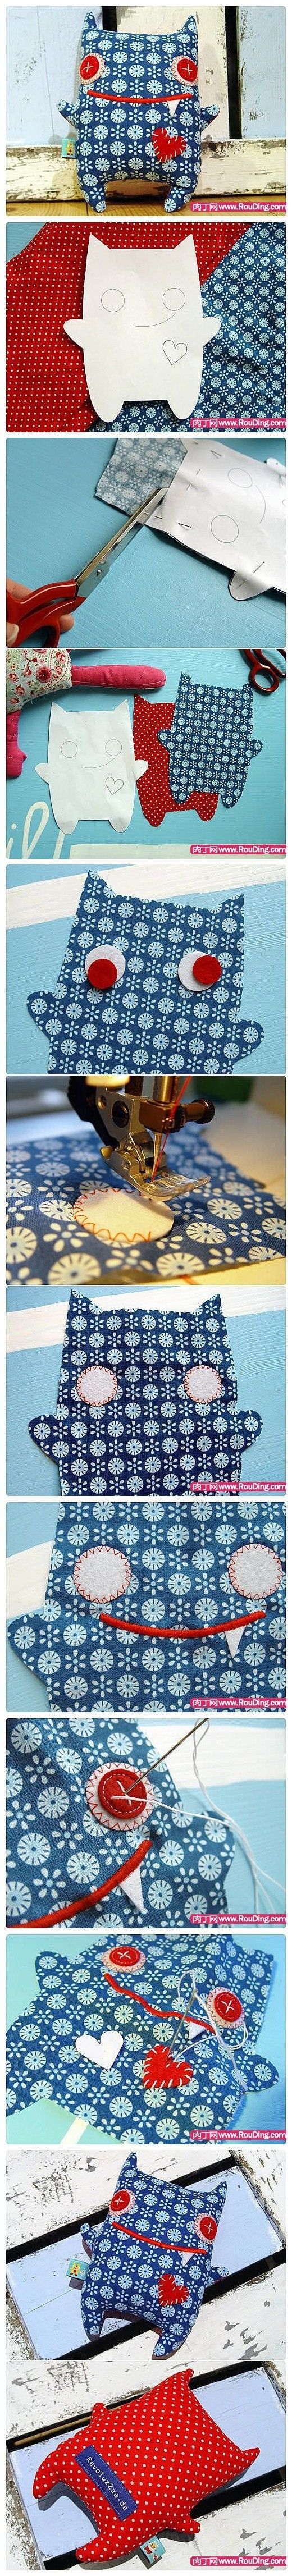 best projets à essayer images on pinterest sewing ideas fabric